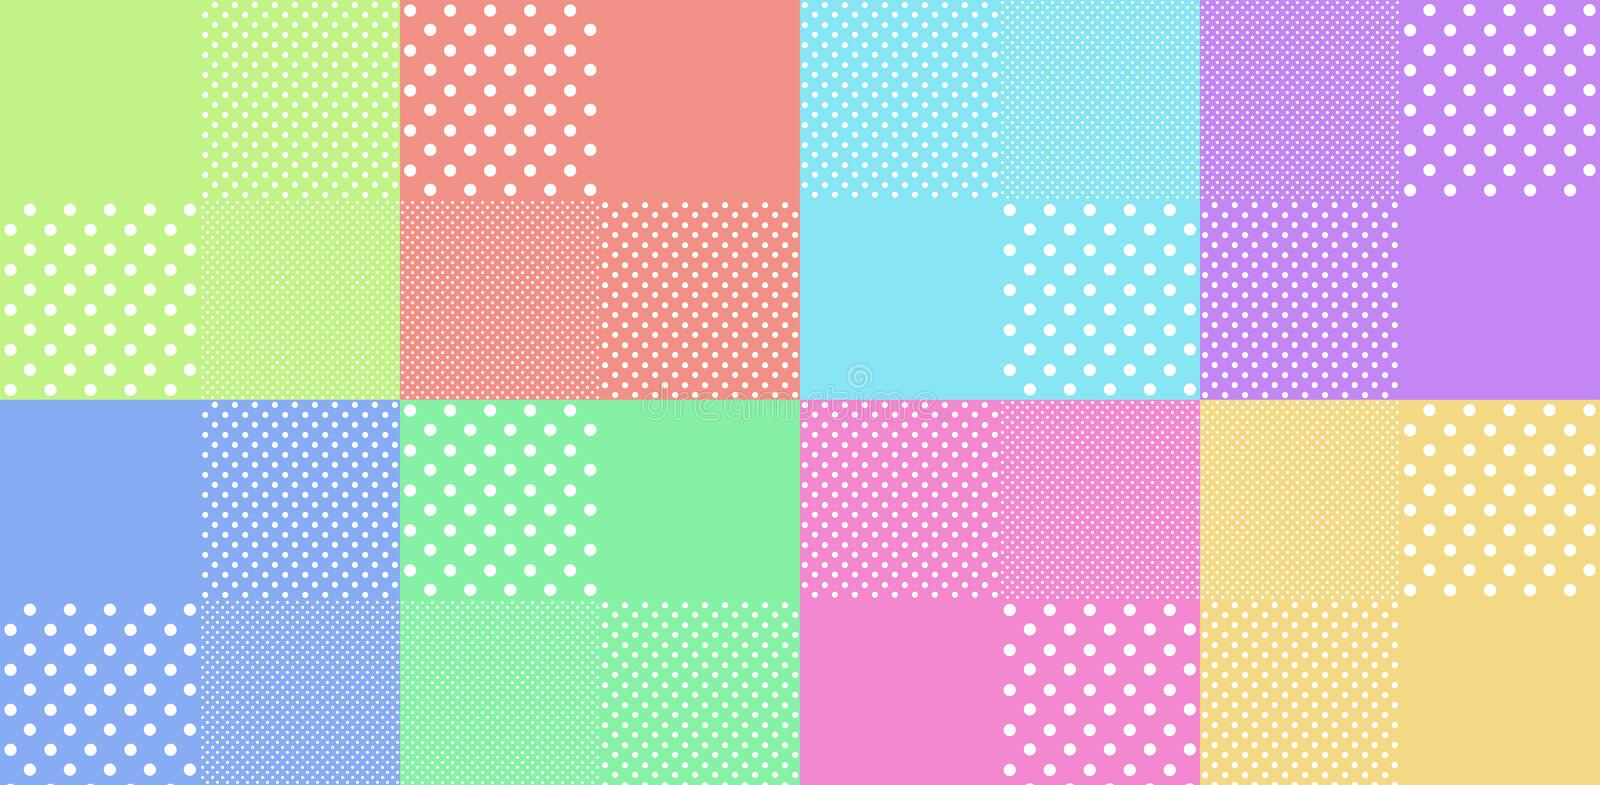 Download Vintage Background From Polka Dot Stock Illustration - Illustration of scrapbook, stationary: 26629195